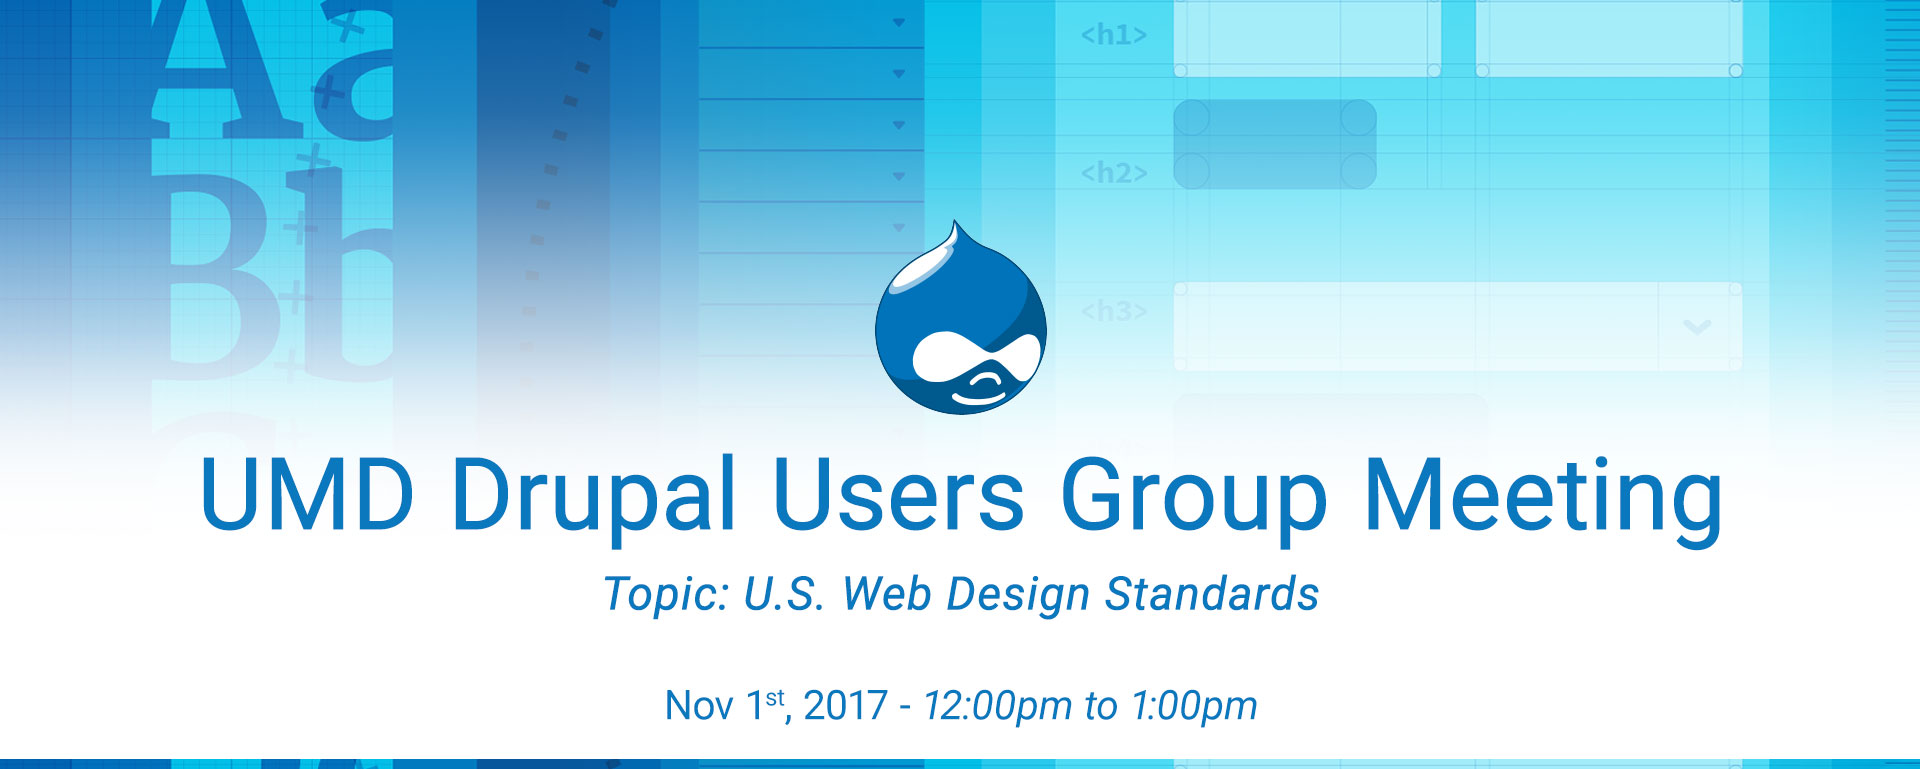 Drupal Users Meeting - U.S. Web Design Standards